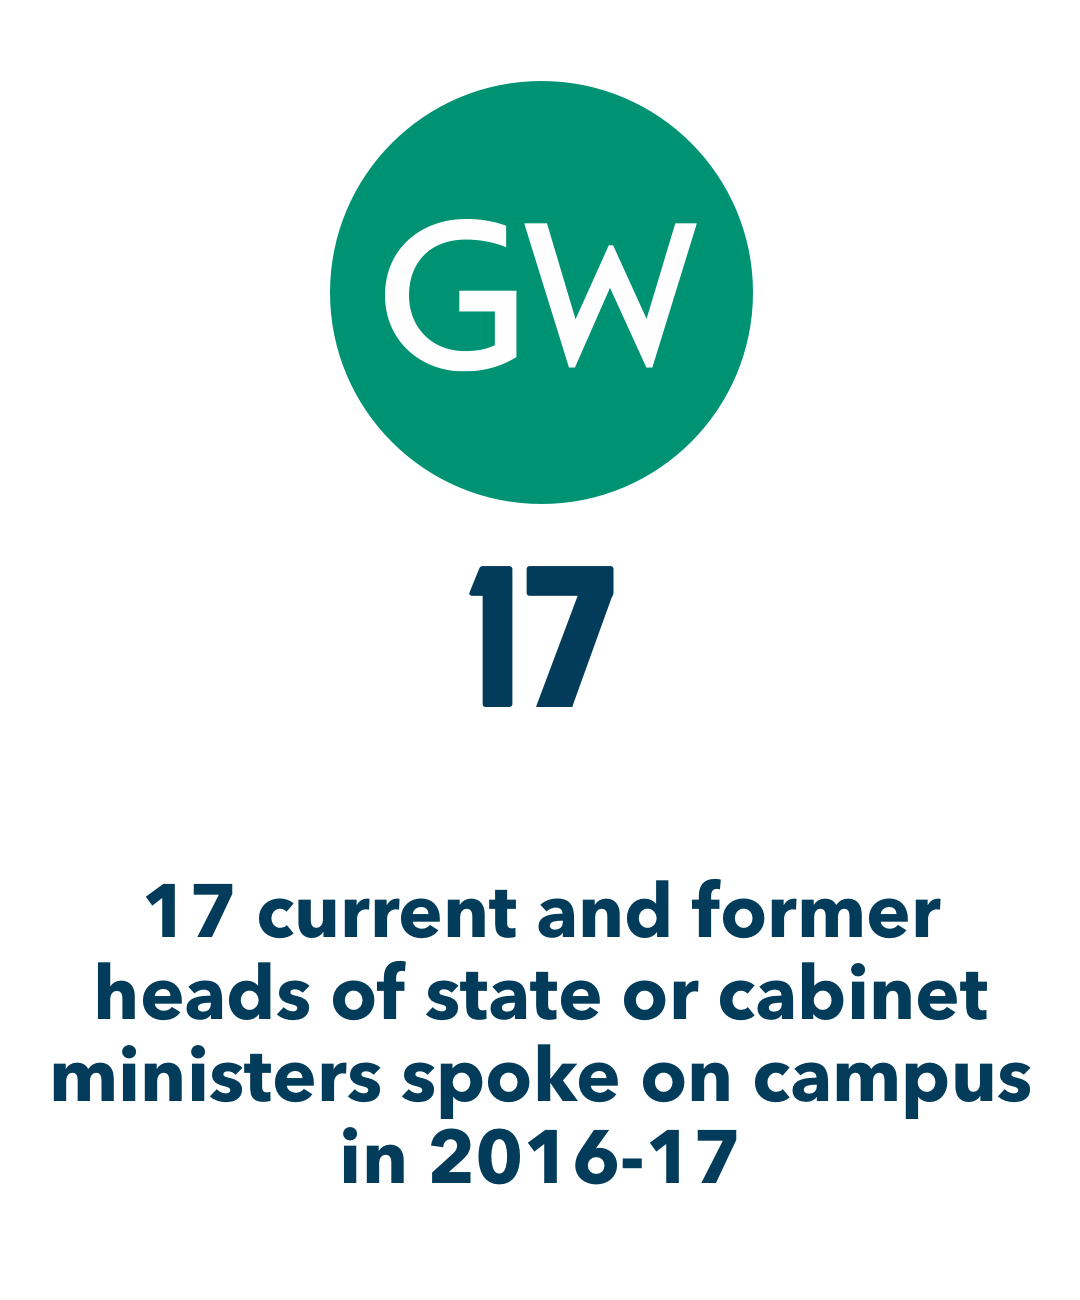 GW; 17; 17 current and former heads of state or cabinet ministers spoke on campus in 2016-17